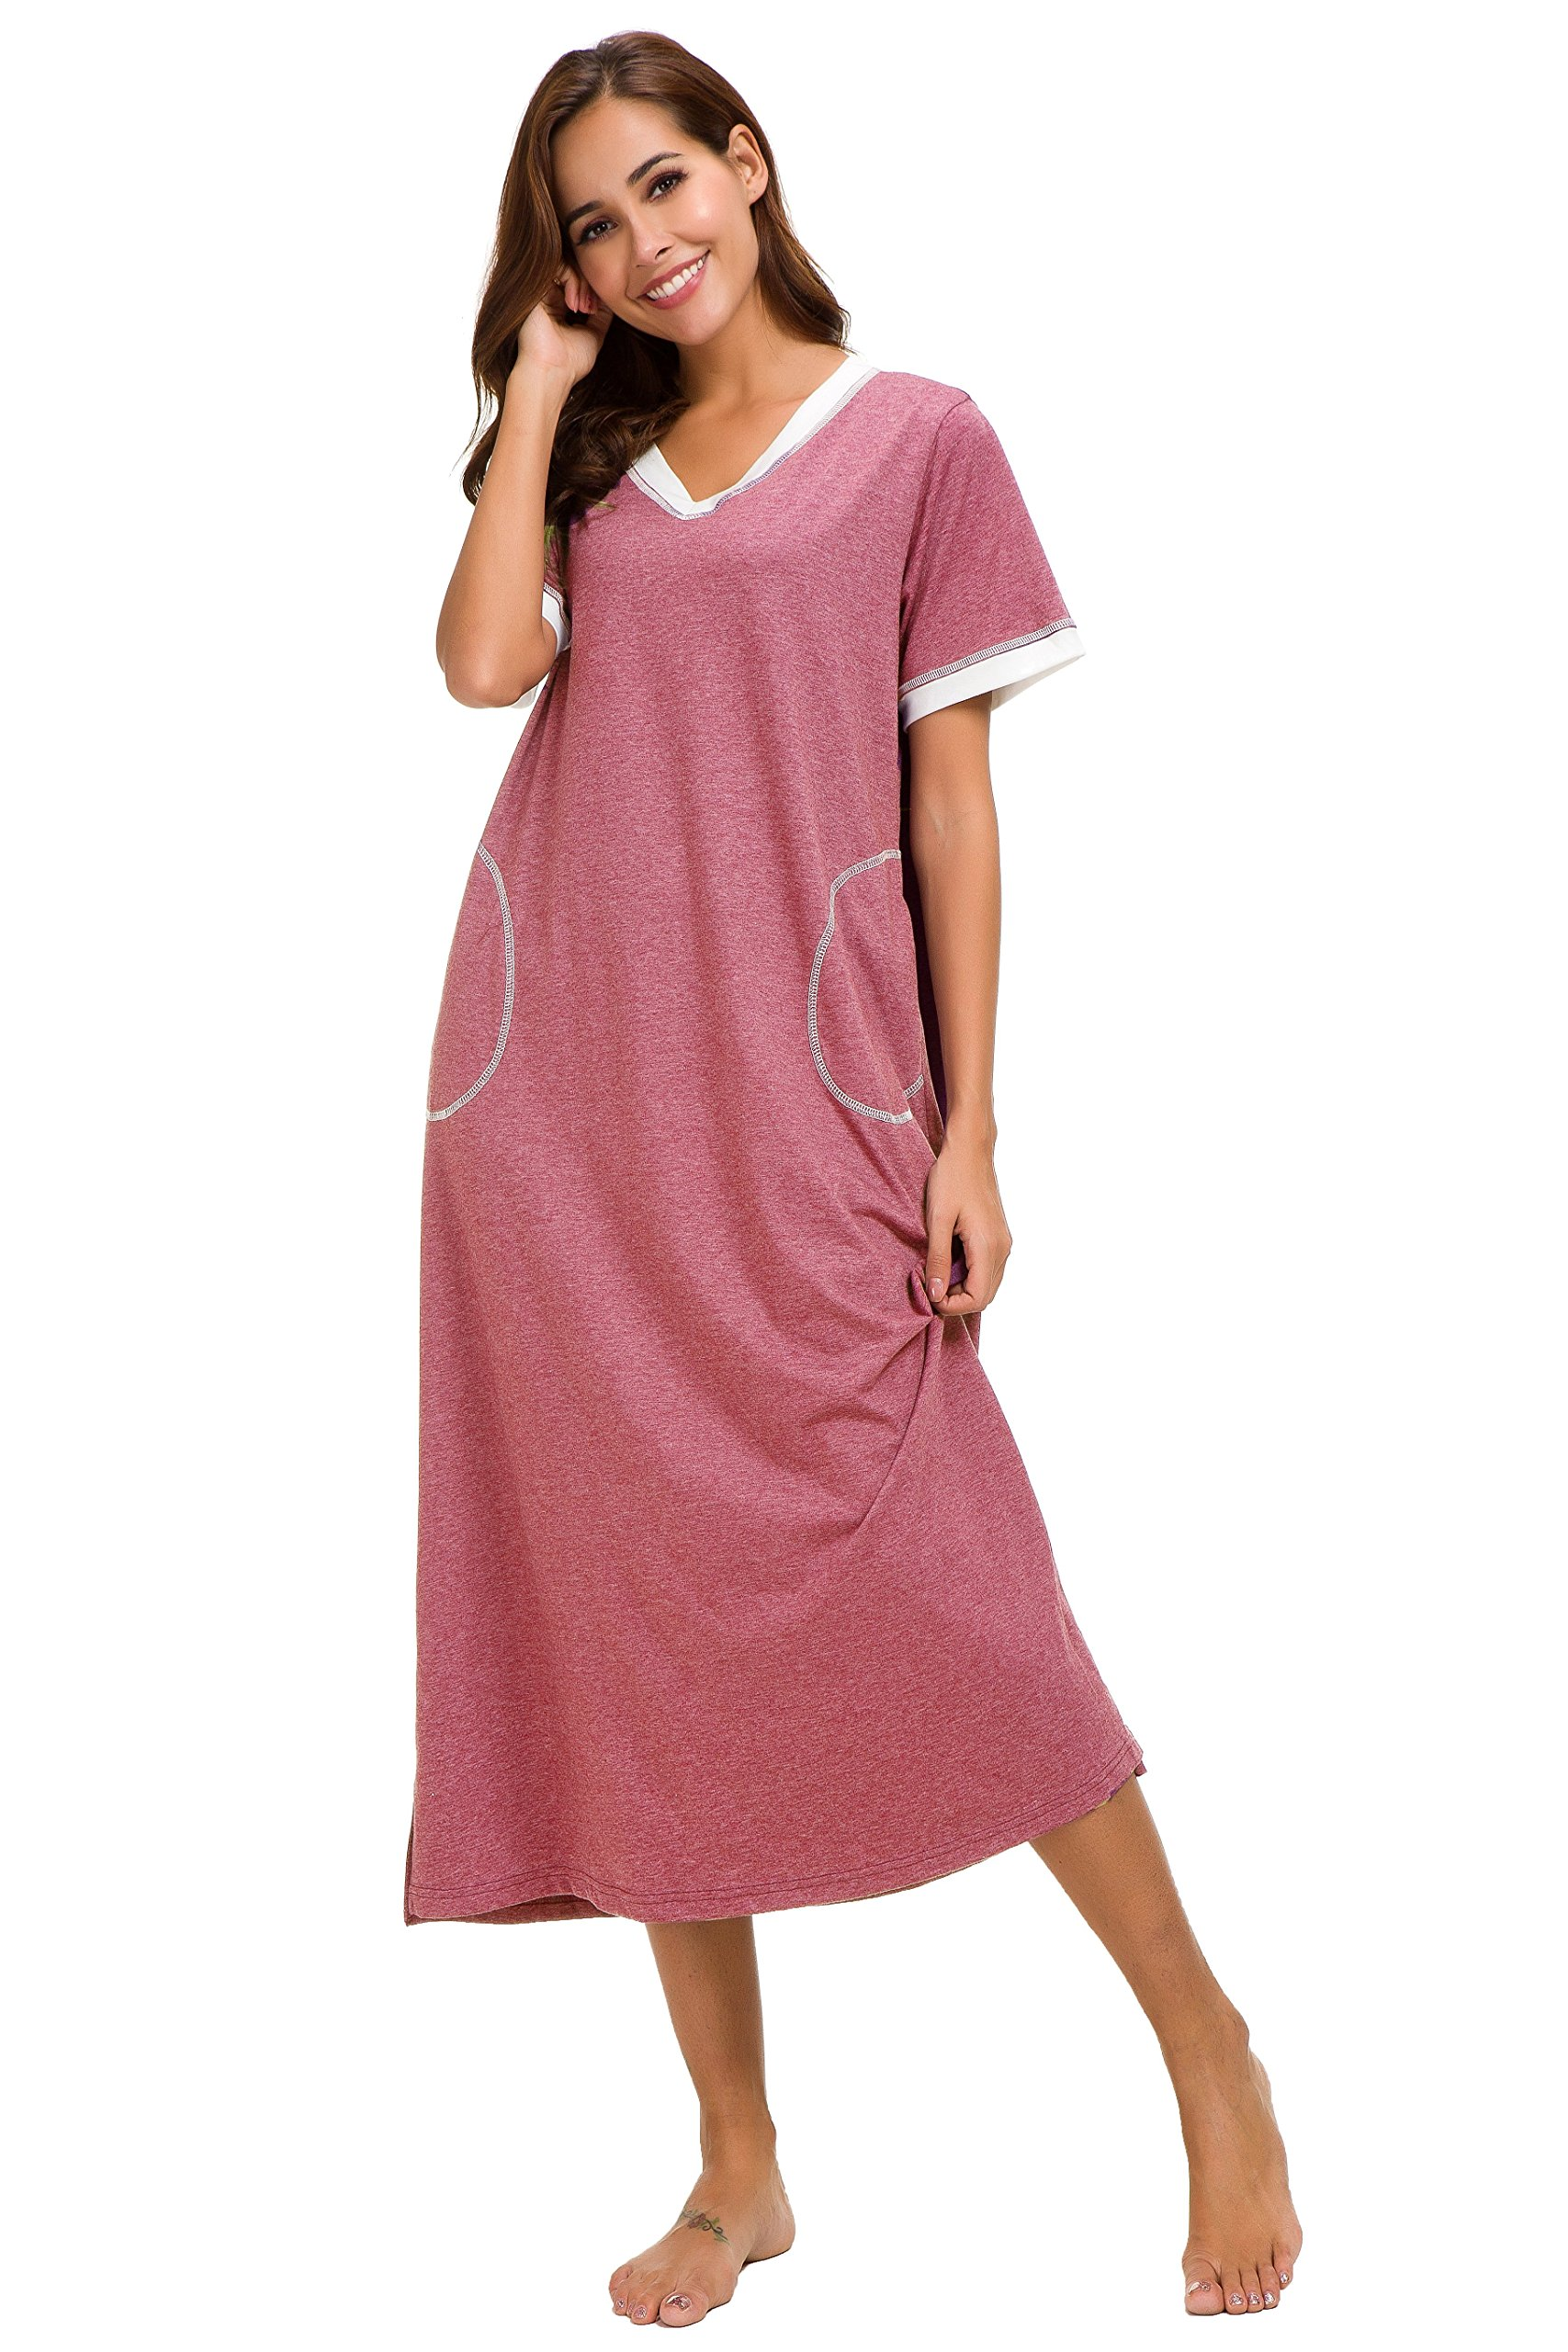 Aviier Long Nightgown Womens Lounge Dresses with Pockets V Neck Short Sleeve Maxi Nightshirt Sleepwear (XXL, Red)